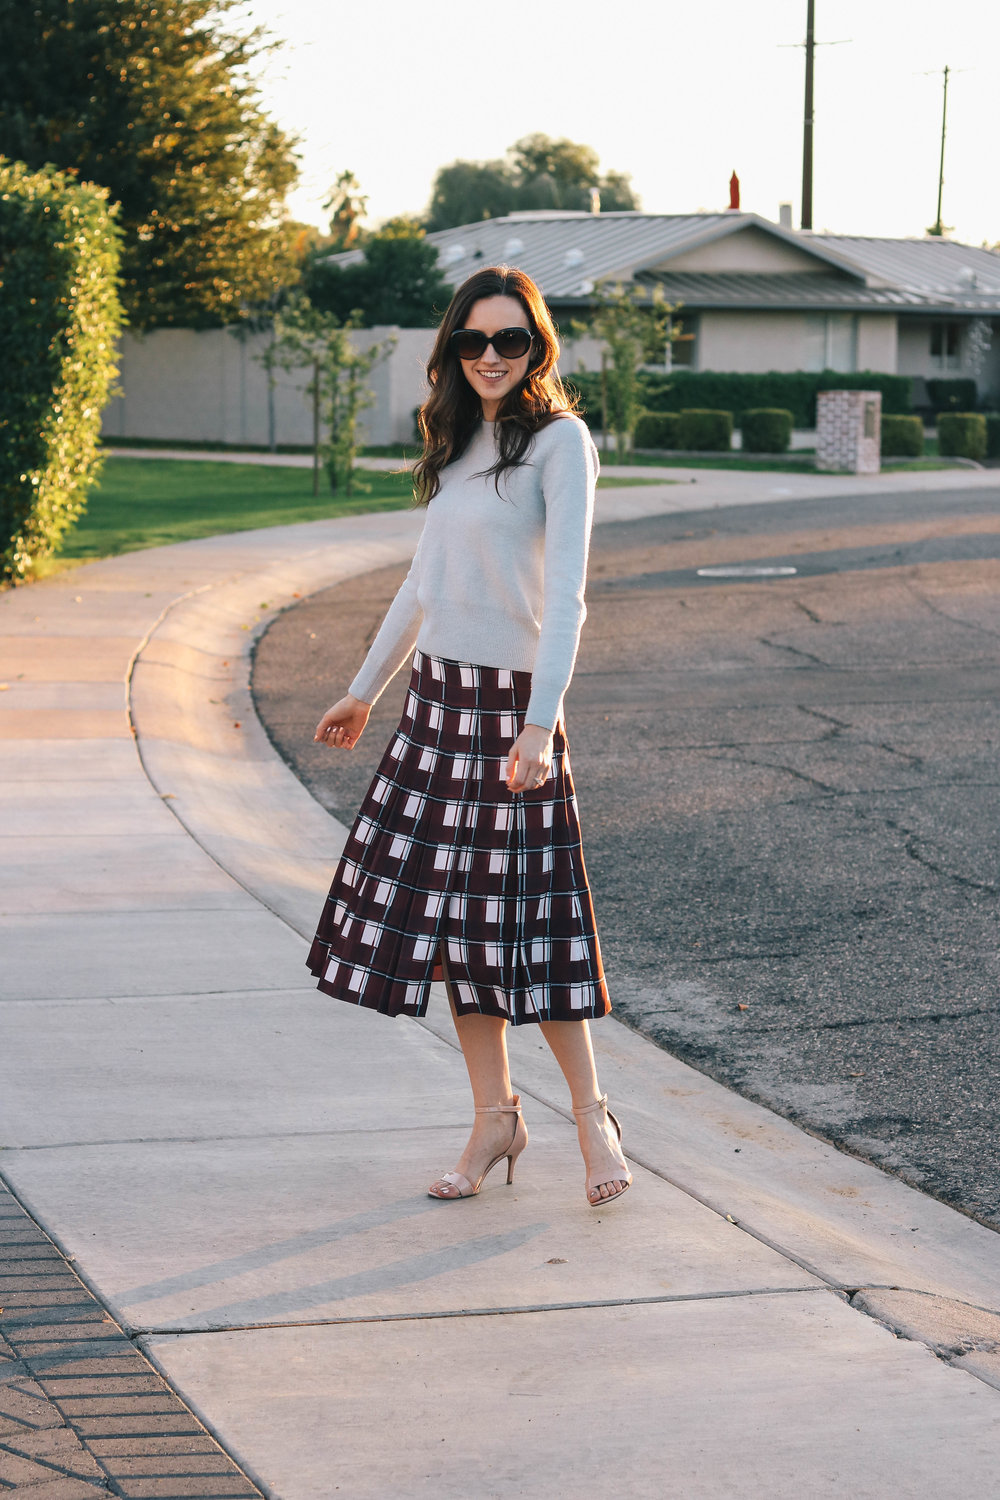 bb-plaid-midi-skirt-001 (1 of 1).jpg